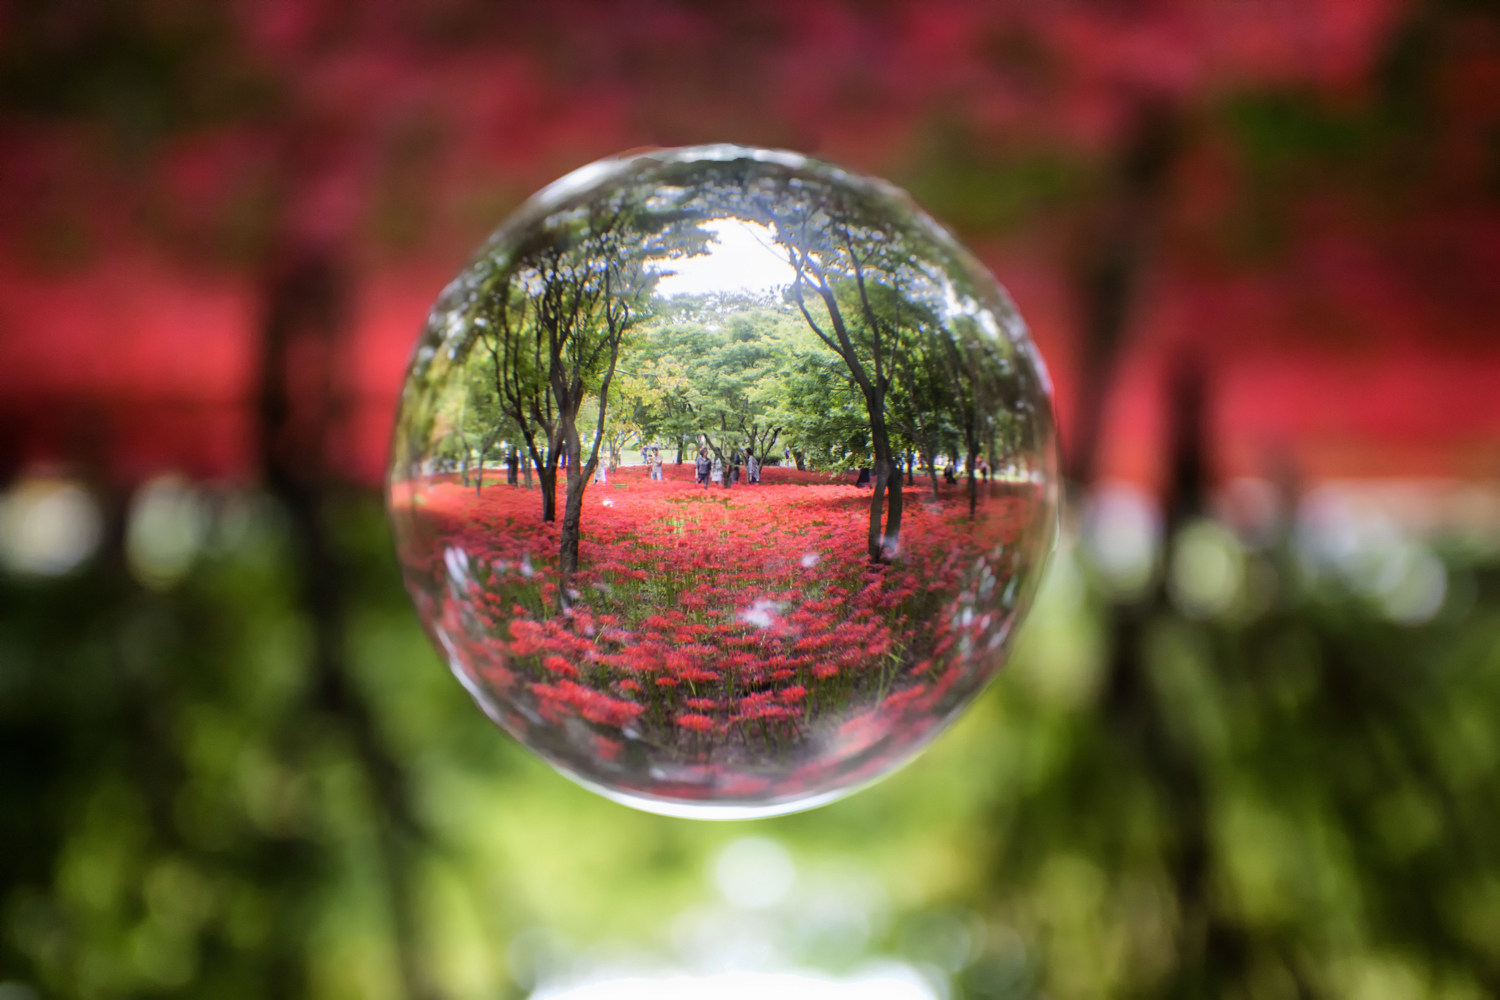 Image: Lensball photography is a lot of fun, this photo has used post processing to make the ball...